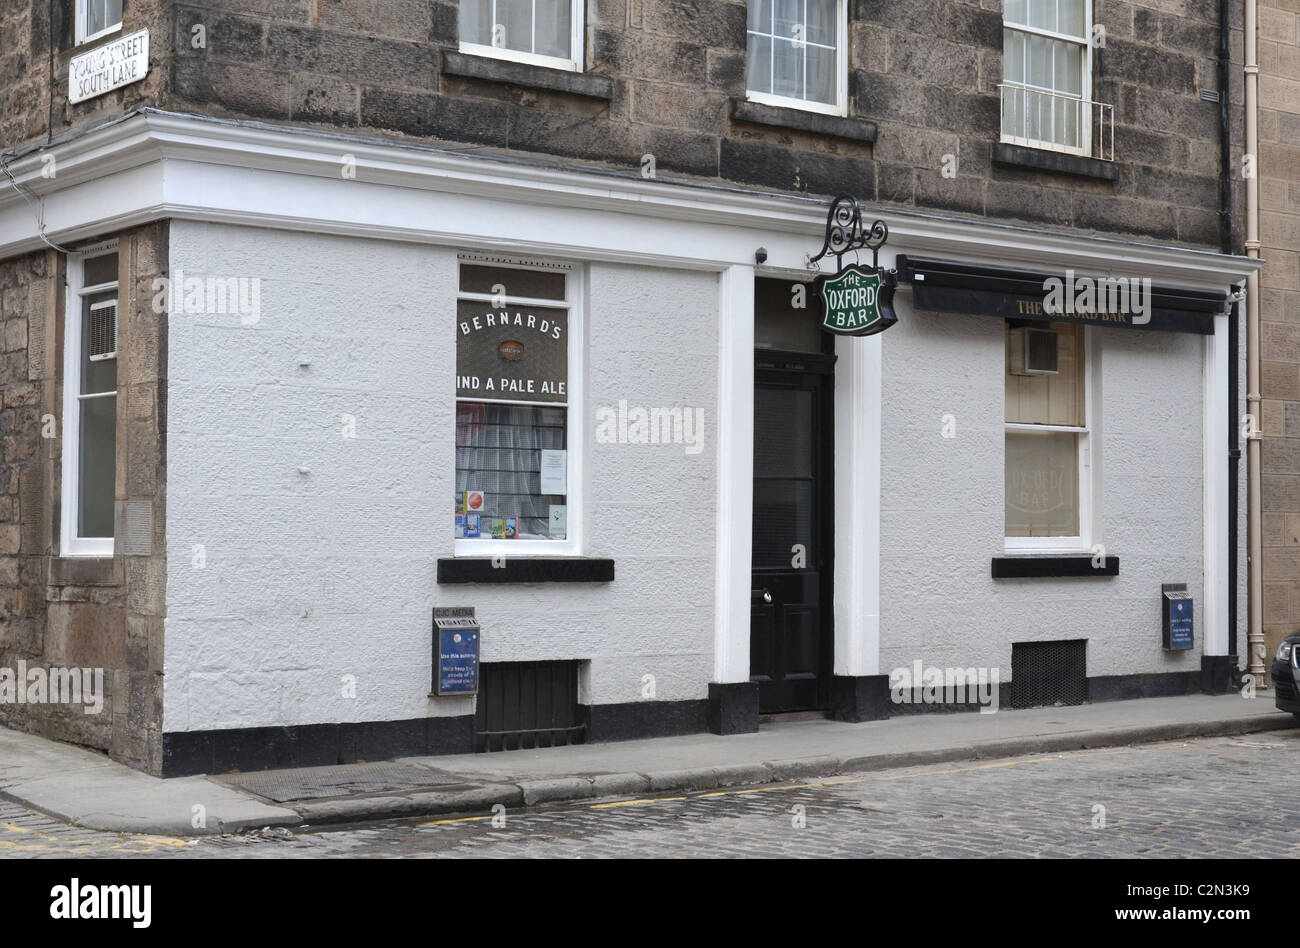 The Oxford Bar in Young Street, the watering hole of Ian Rankin's fictional Inspector Rebus. - Stock Image